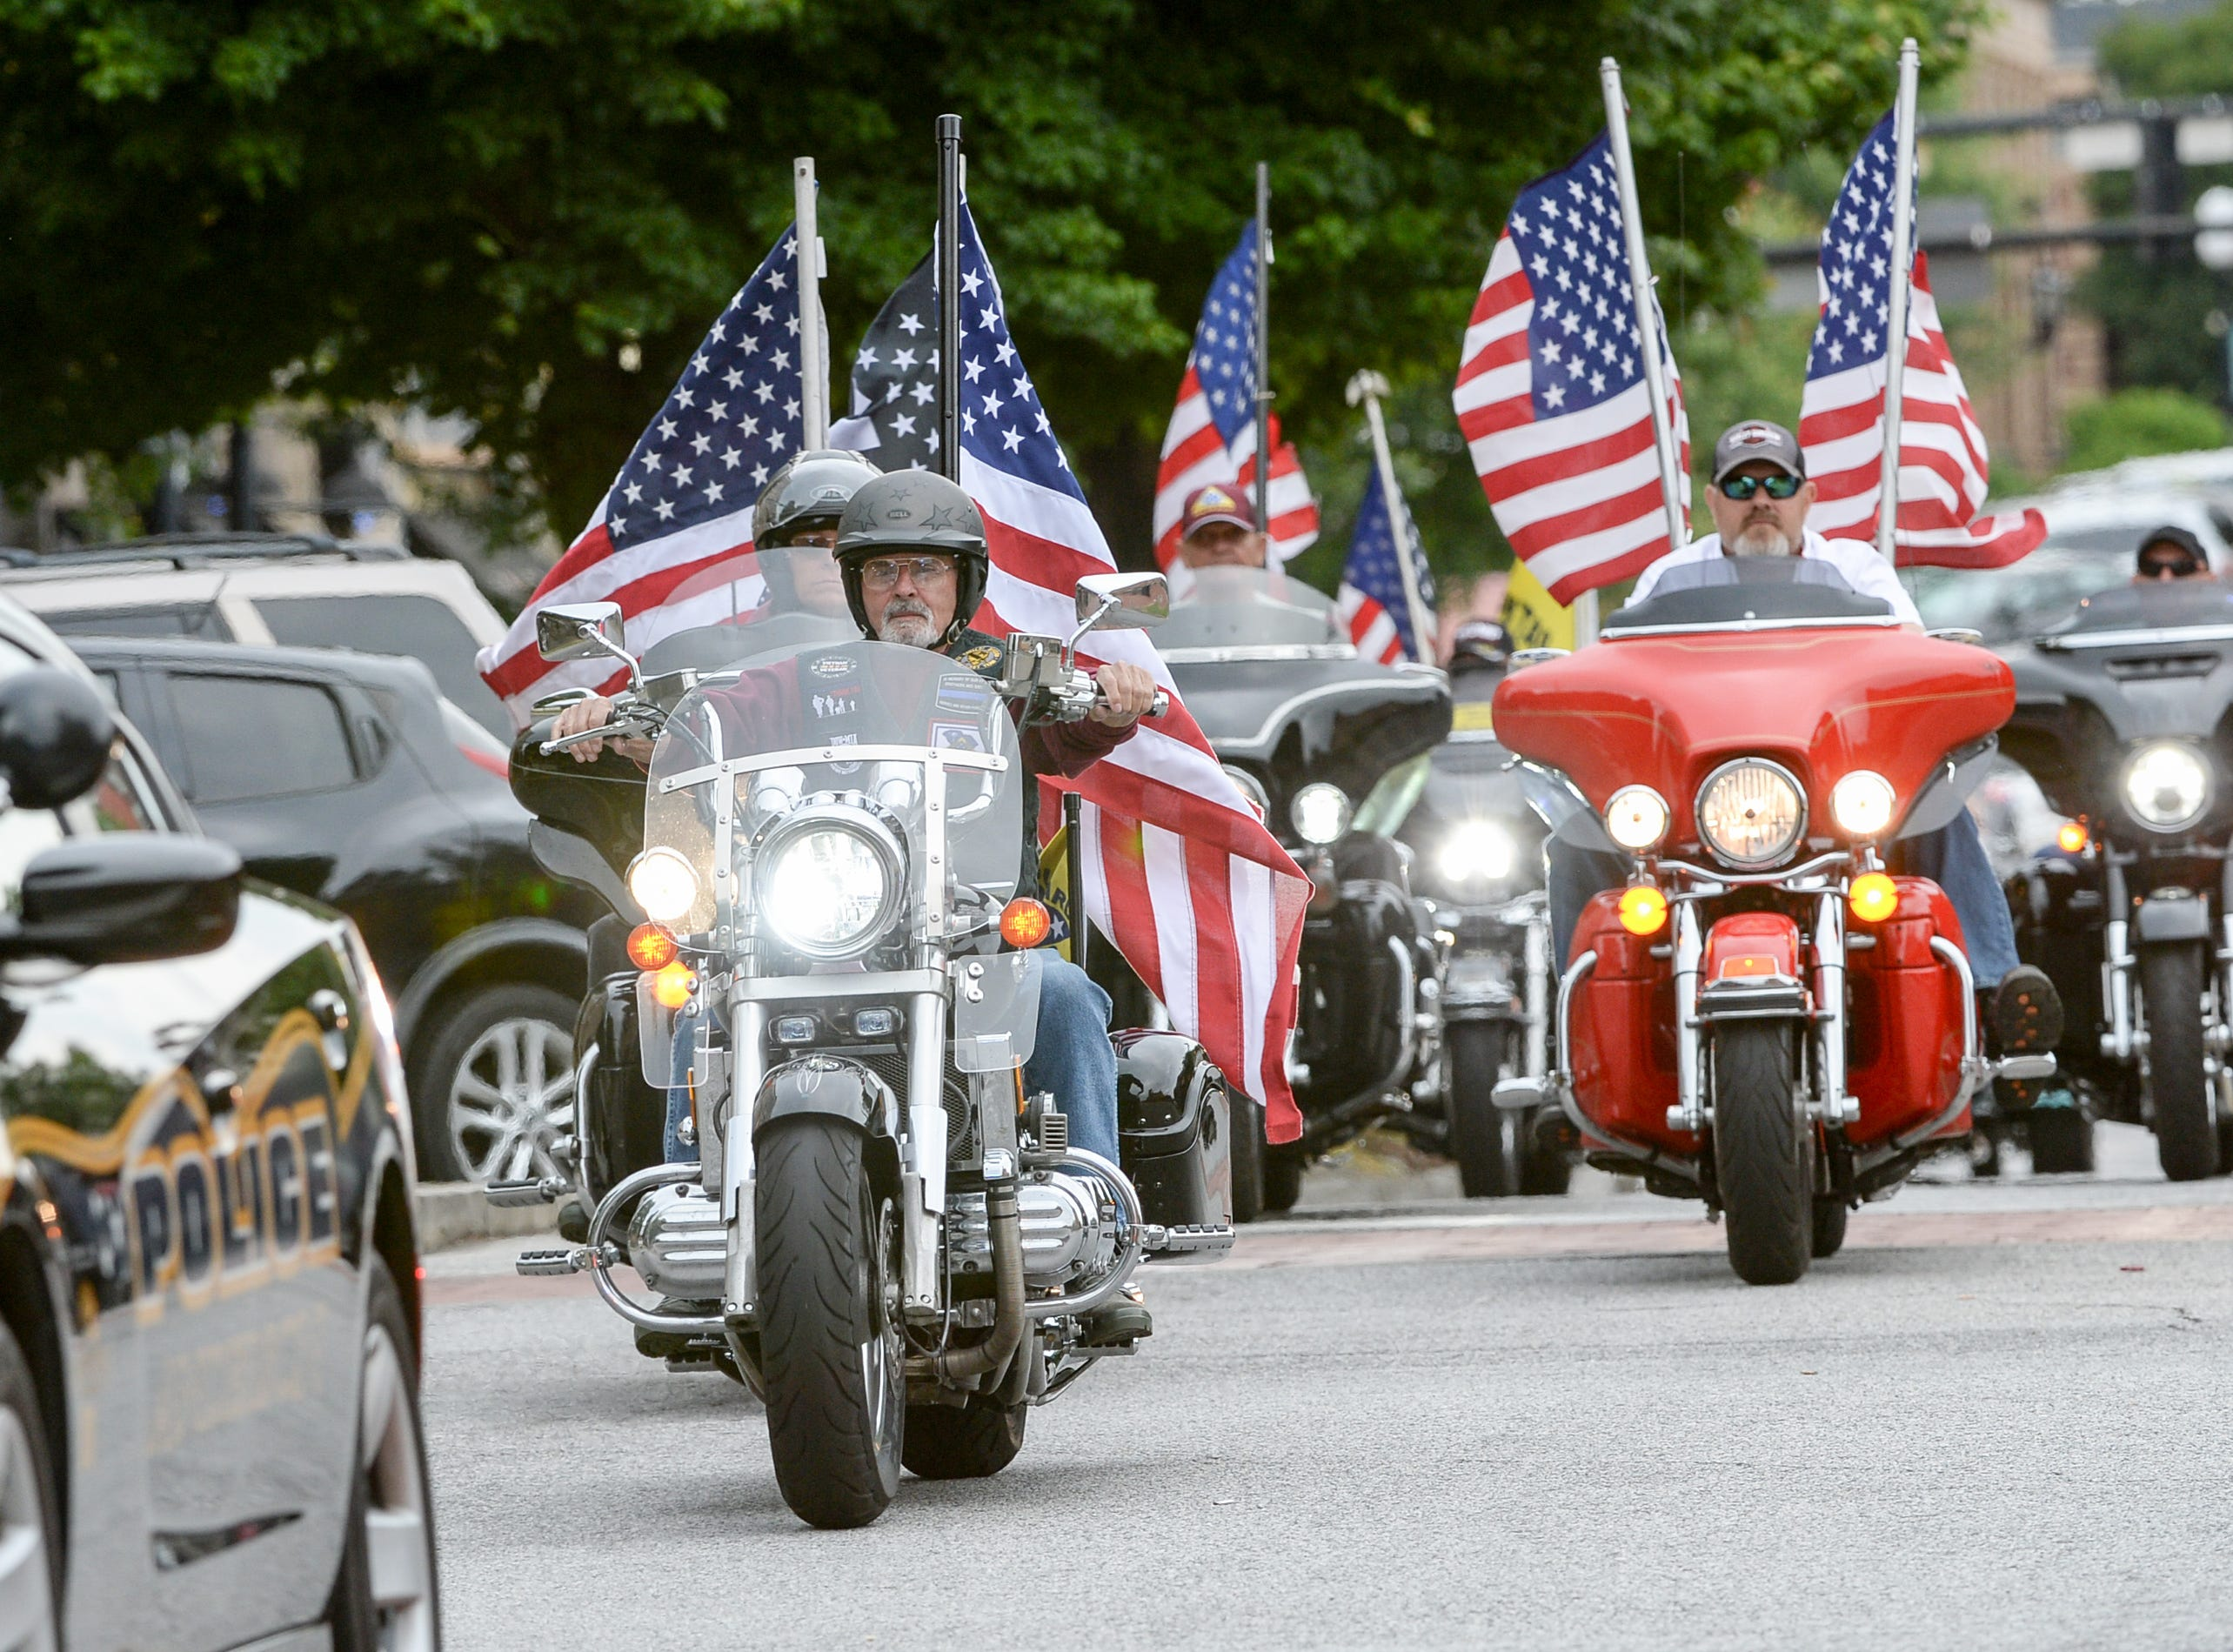 A procession of law enforcement ride with the Patriot Guard and others on motorcycles ride the 2019 Peace Officer Memorial Service Wednesday May 15, 2019. People attended to help honor the lives of officers lost in the line of duty.